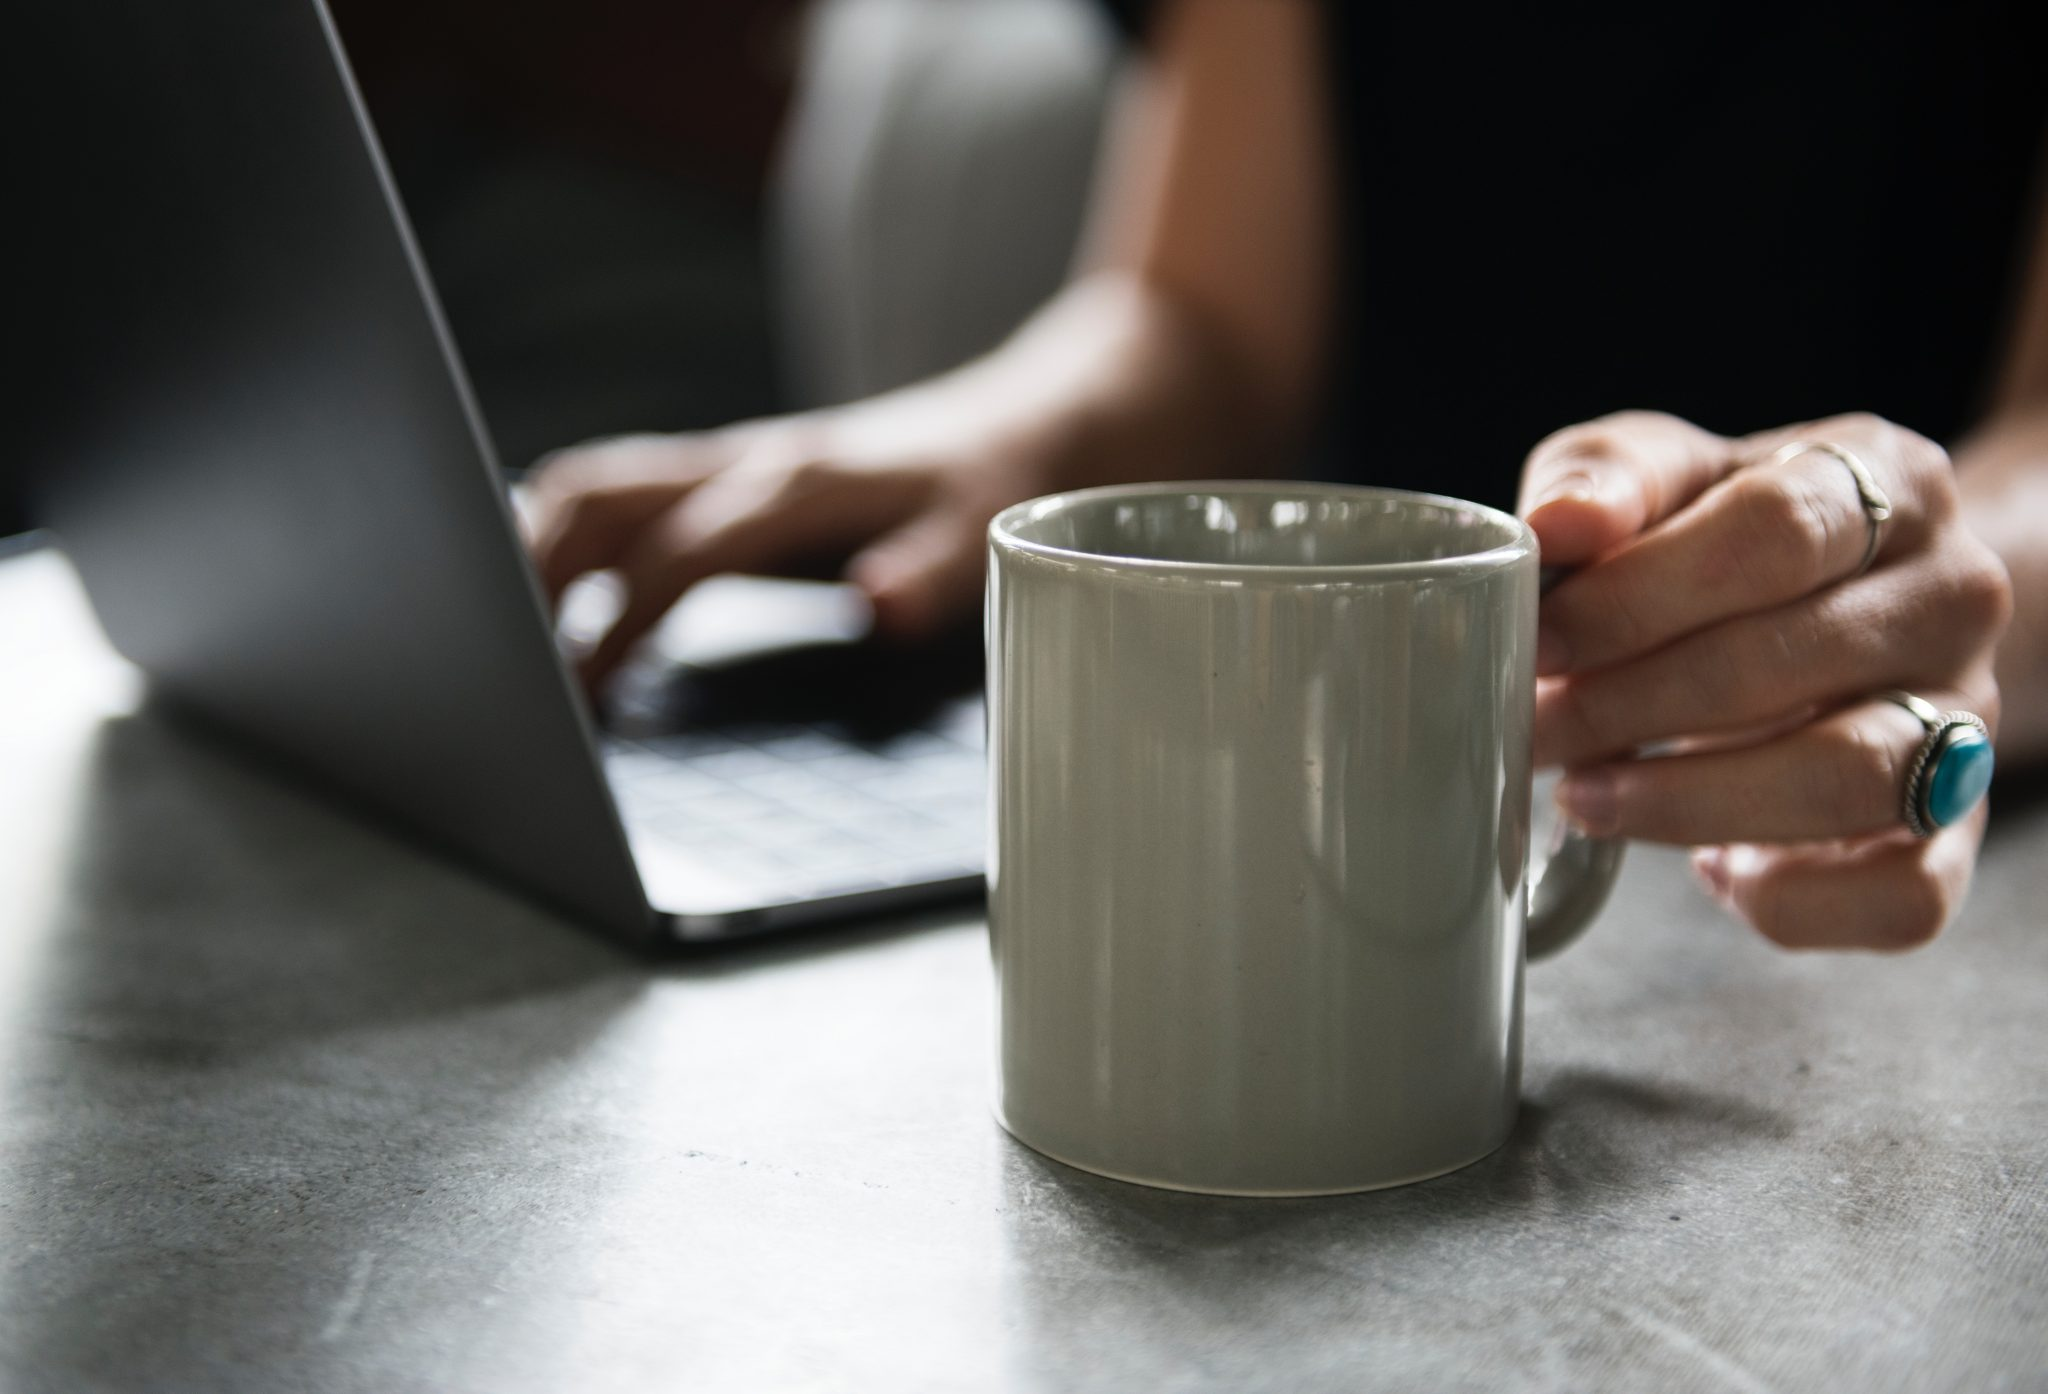 Why is providing online counselling important for addiction recovery?